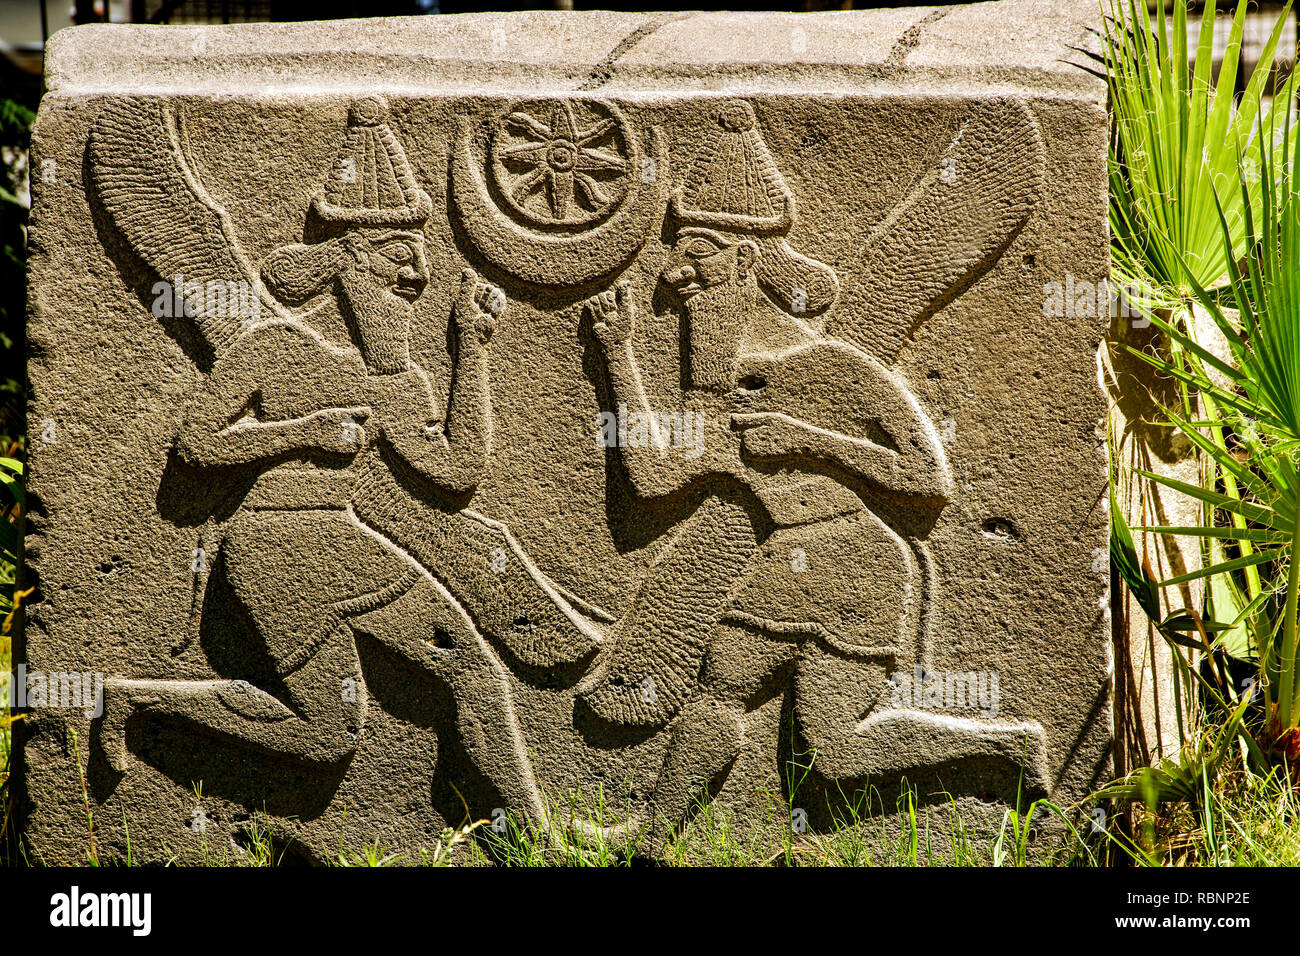 Museum, genius with sun and moon, Neohittit, IXc. BC. Aleppo. Syria, Middle East - Stock Image